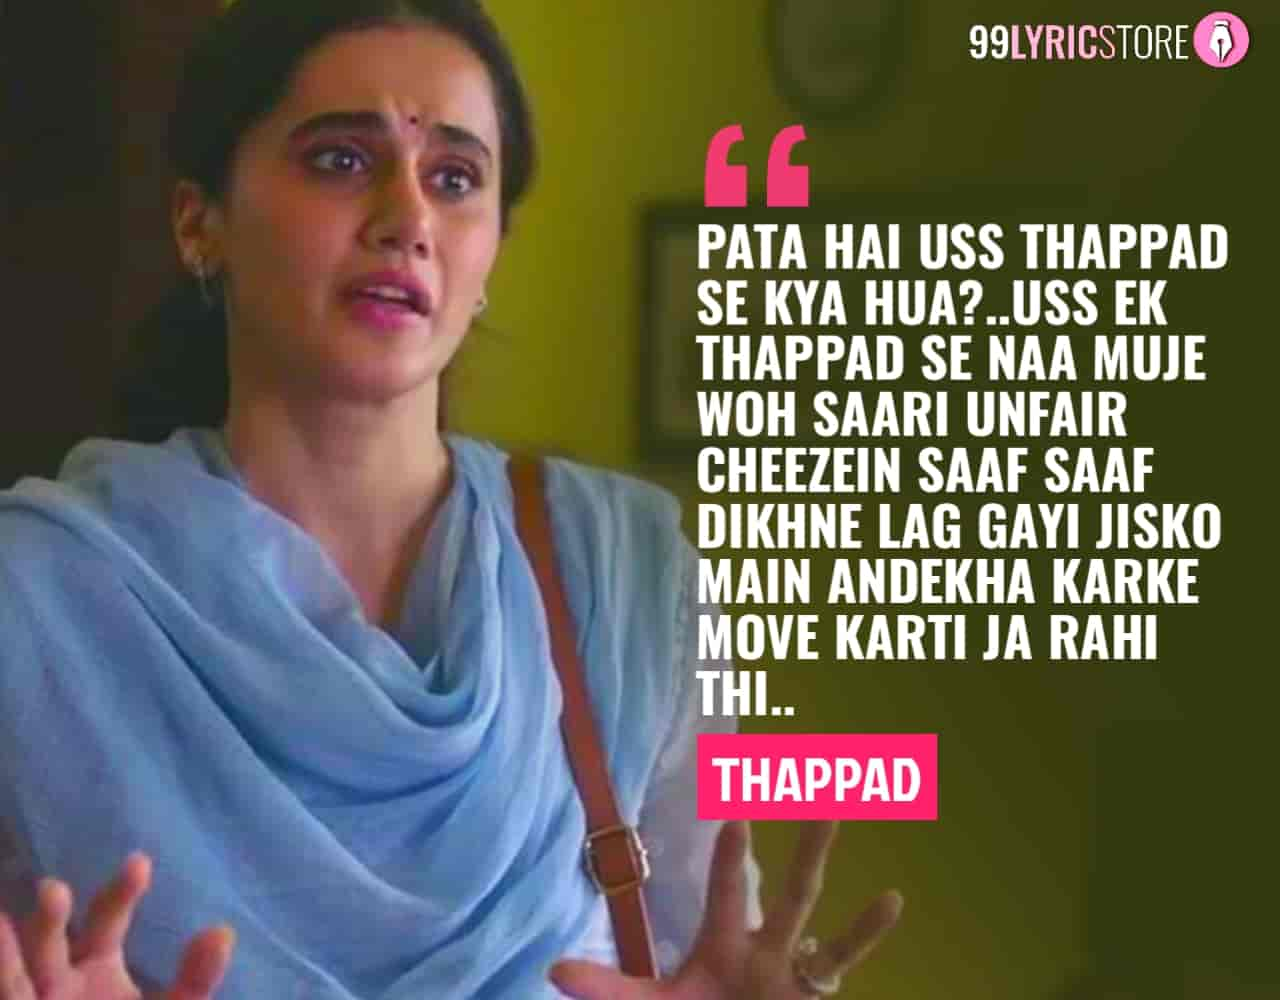 Here we are presenting the powerfull and must needed dialogues of Taapsee Pannu starrer movie Thappad directed by Anubhav Sushila Sinha and produced by Bhushan Kumar.